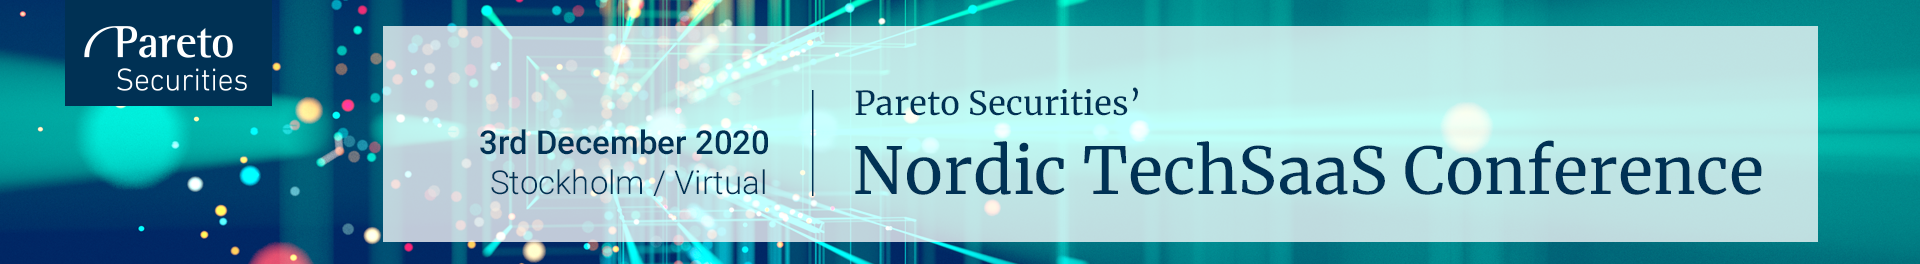 Header image for Pareto Securities' Nordic TechSaaS Conference